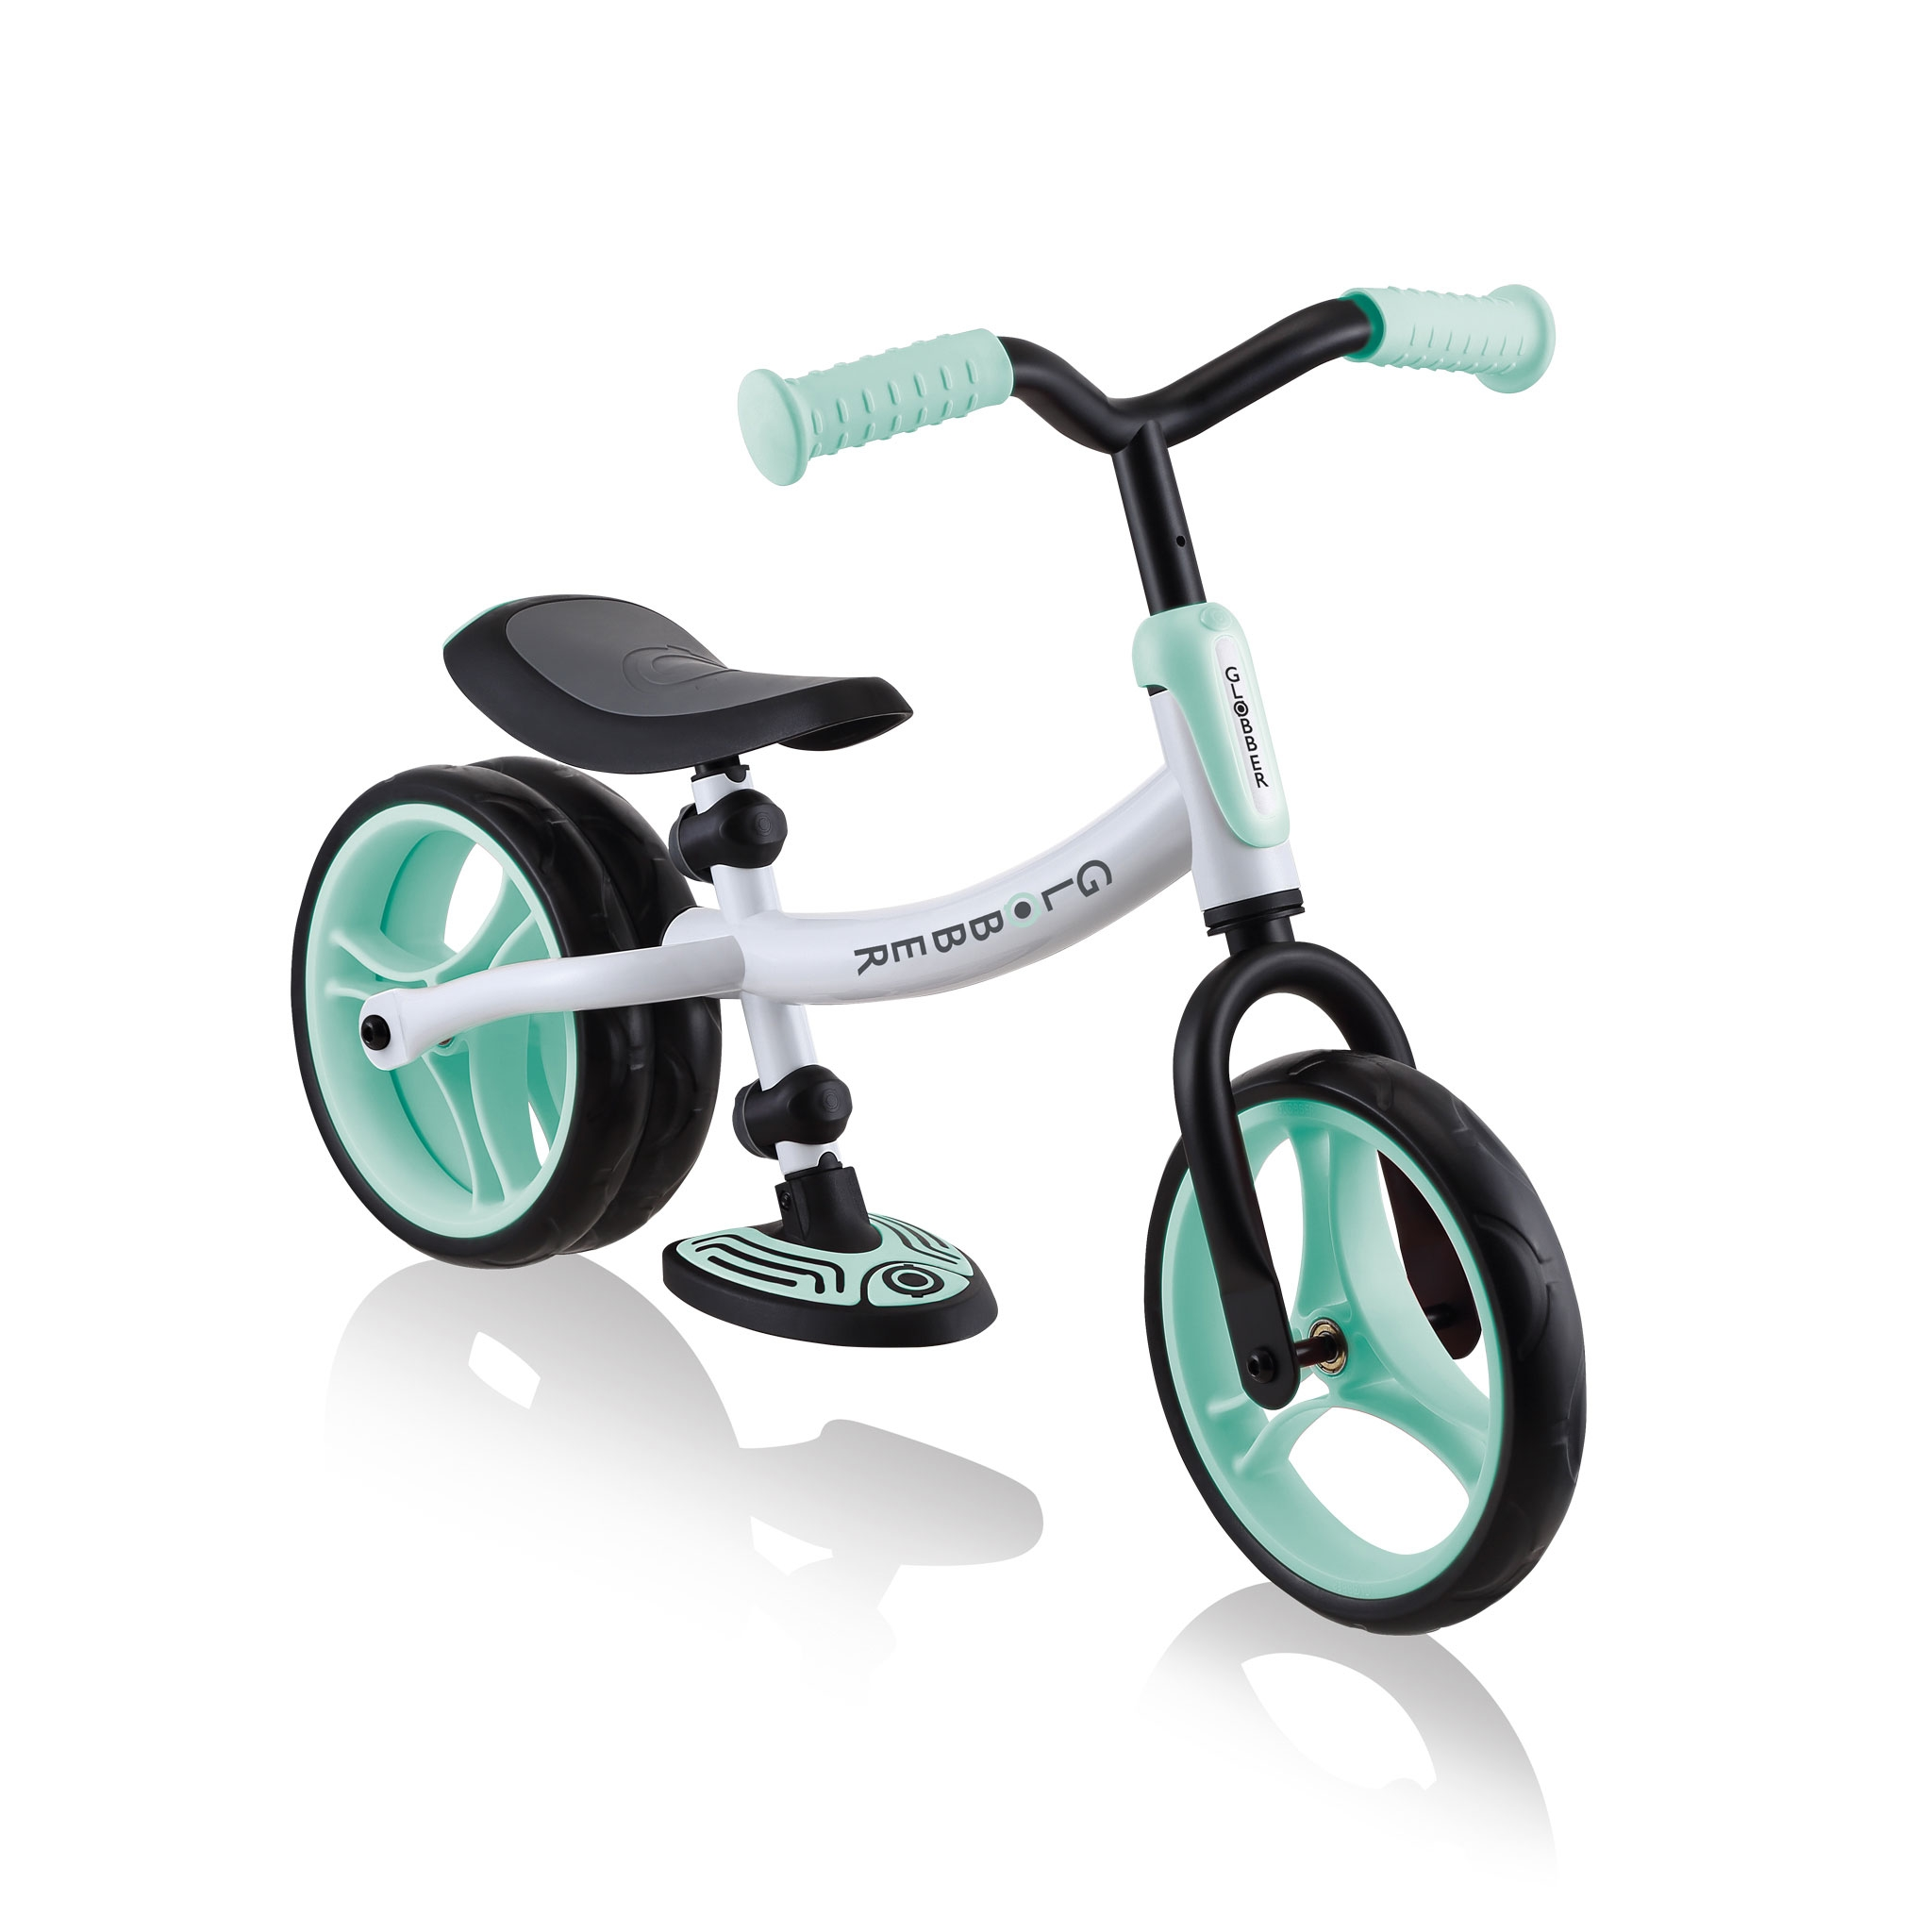 GO-BIKE-DUO-best-toddler-balance-bike-for-girls-and-boys-aged-2-to-5-with-dual-rear-wheel_mint